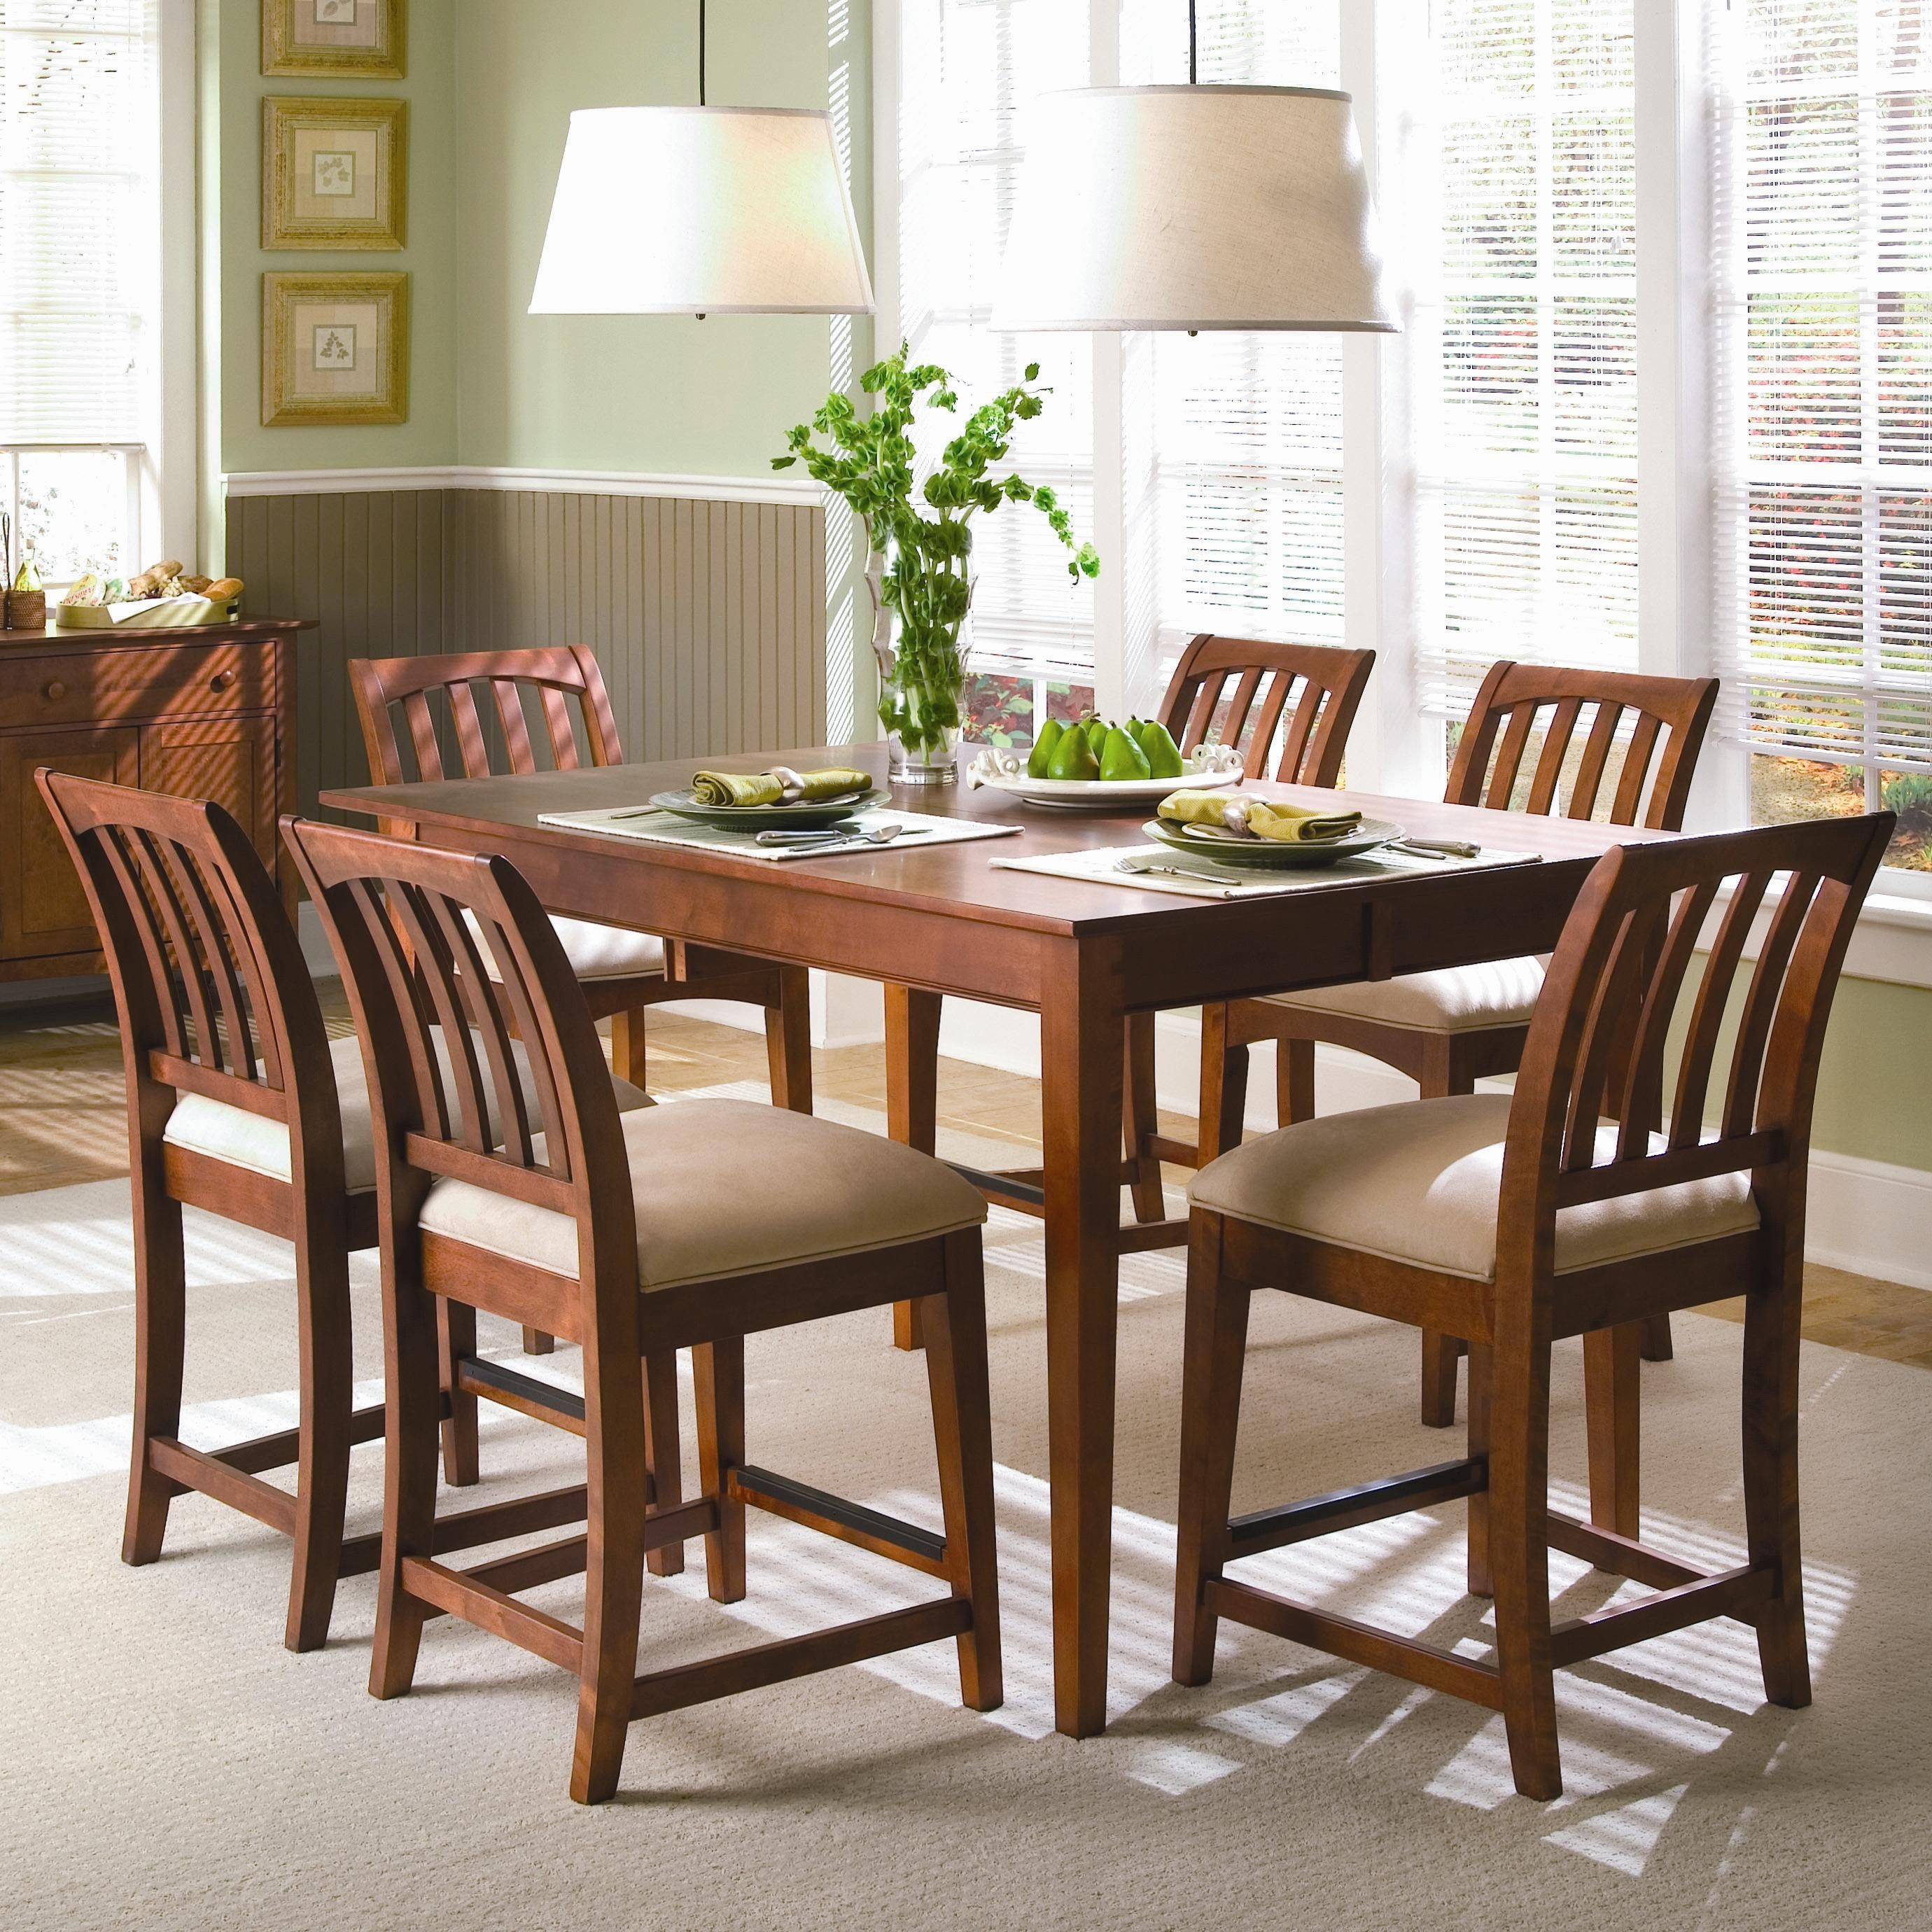 Gathering House 7 Piece Tall Dining Set By Kincaid Furniture